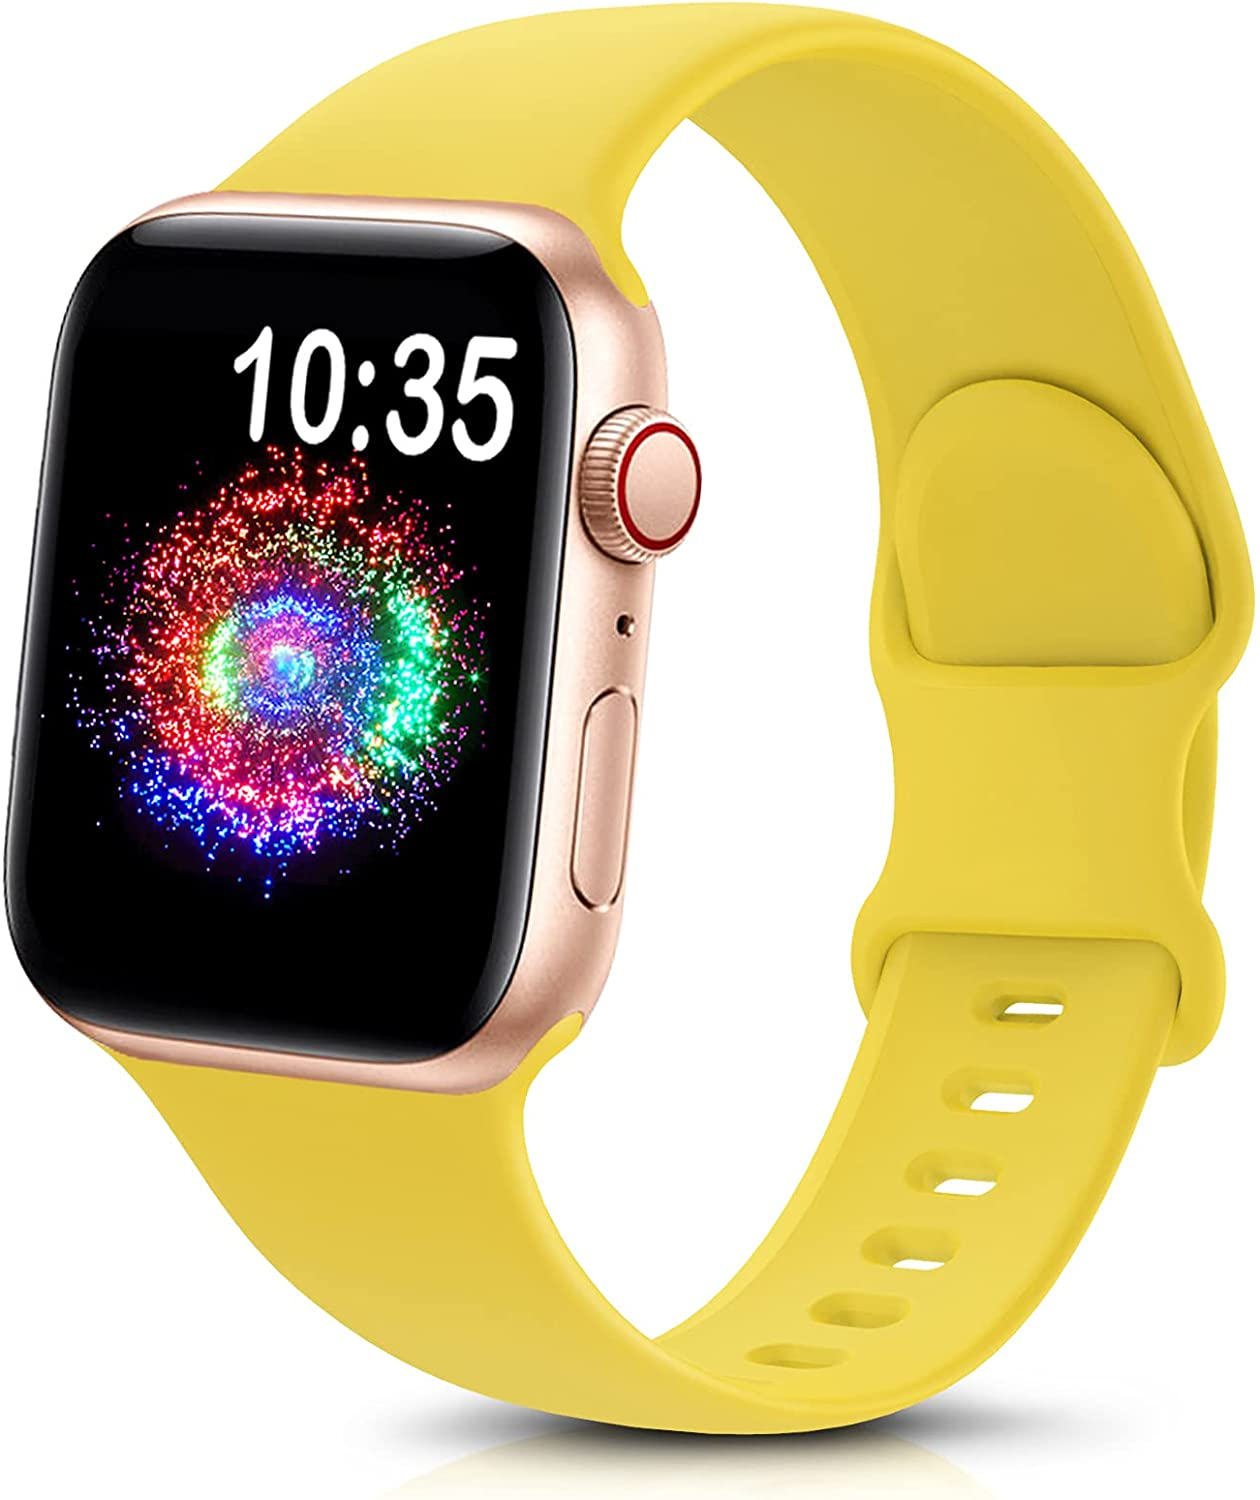 TreasureMax Sport Band Compatible with Apple Watch Bands 38mm 40mm 42mm 44mm, Soft Silicone Replacement Strap Compatible for Apple Watch Series 6 5 4 3 2 1 SE Men Women Yellow 38MM/40MM